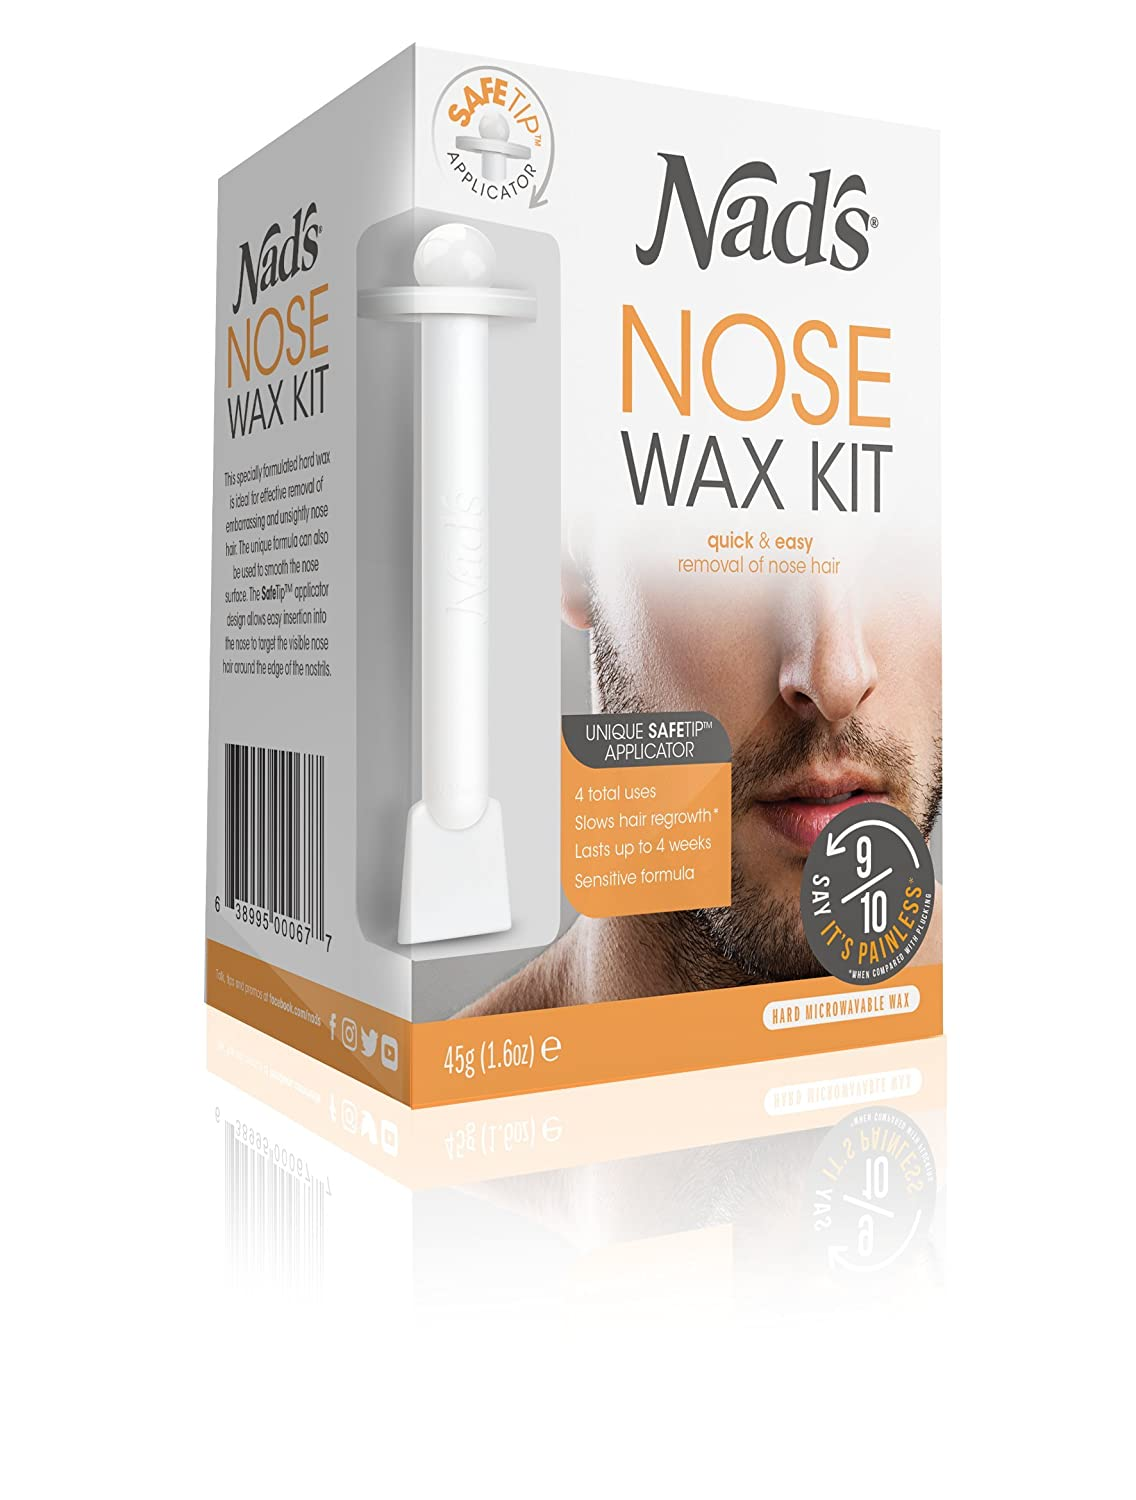 NAD's Nose Wax for Men & Women 1.6 oz Lifesource Group US Inc. 4668